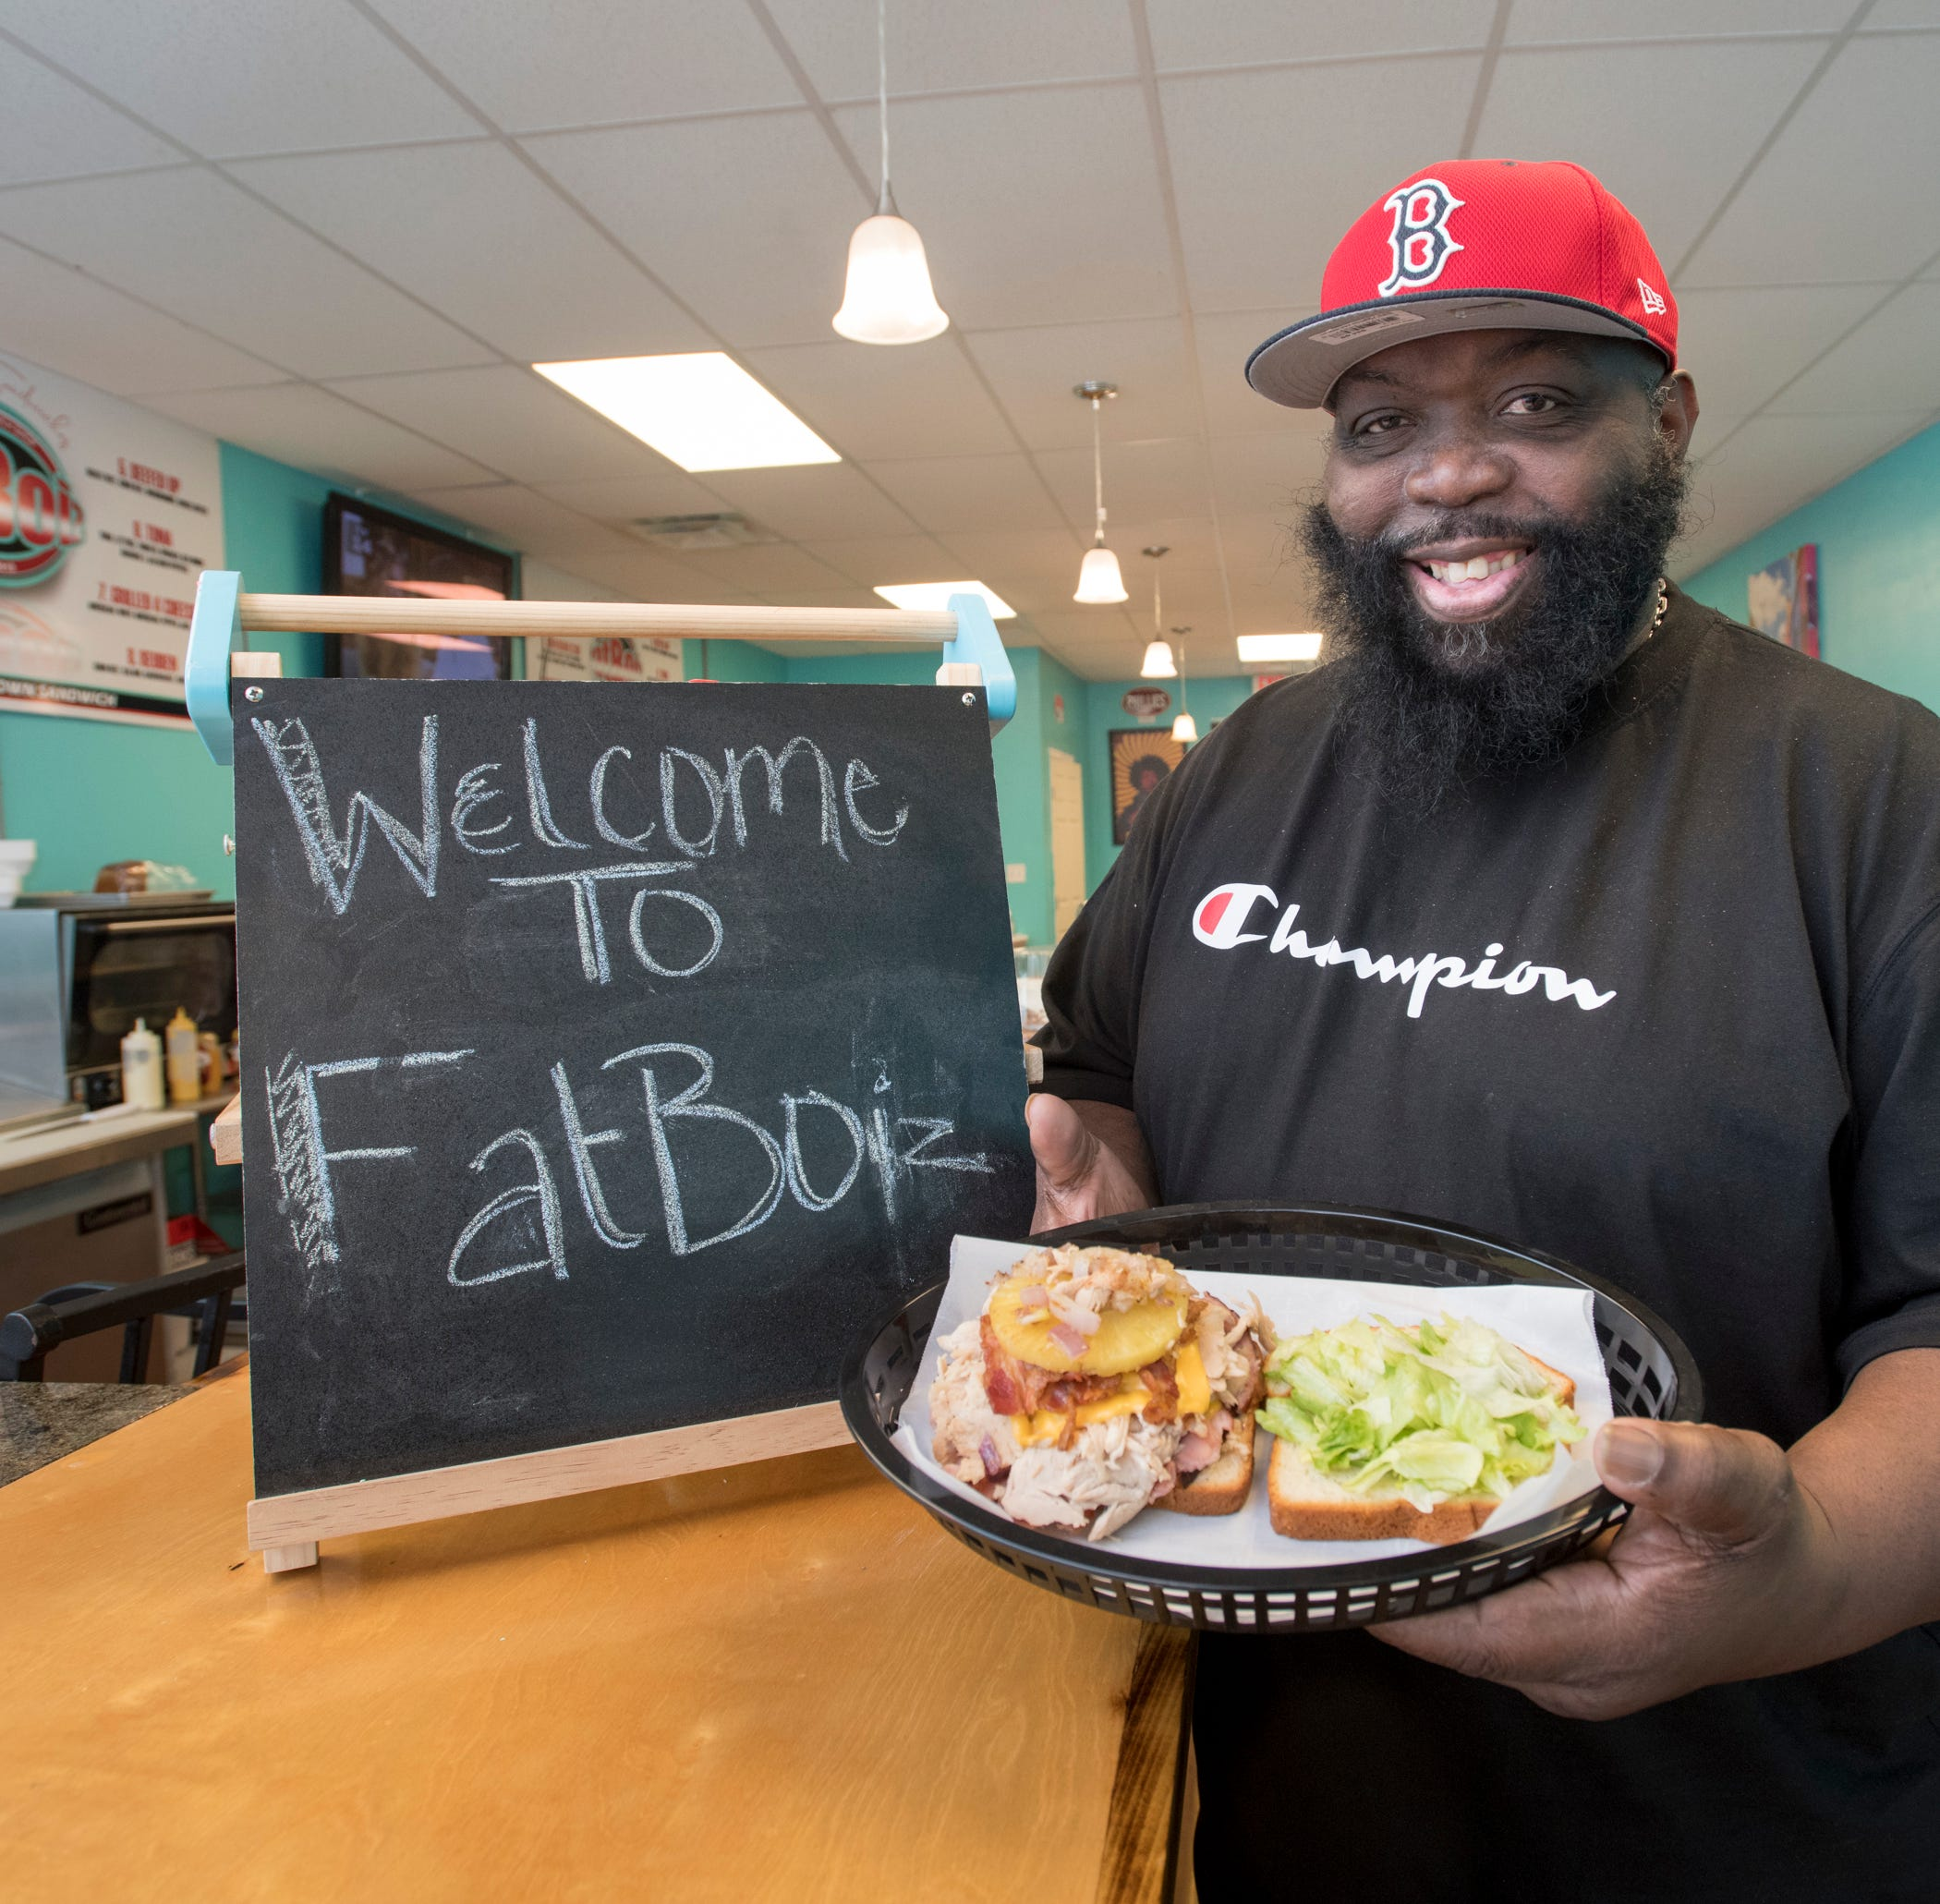 Owner Moses Williams shows off the stack of food inside the Hawaiian Club at Fatboiz sandwich shop on North Pace Blvd. in Pensacola on Tuesday, March 19, 2019.